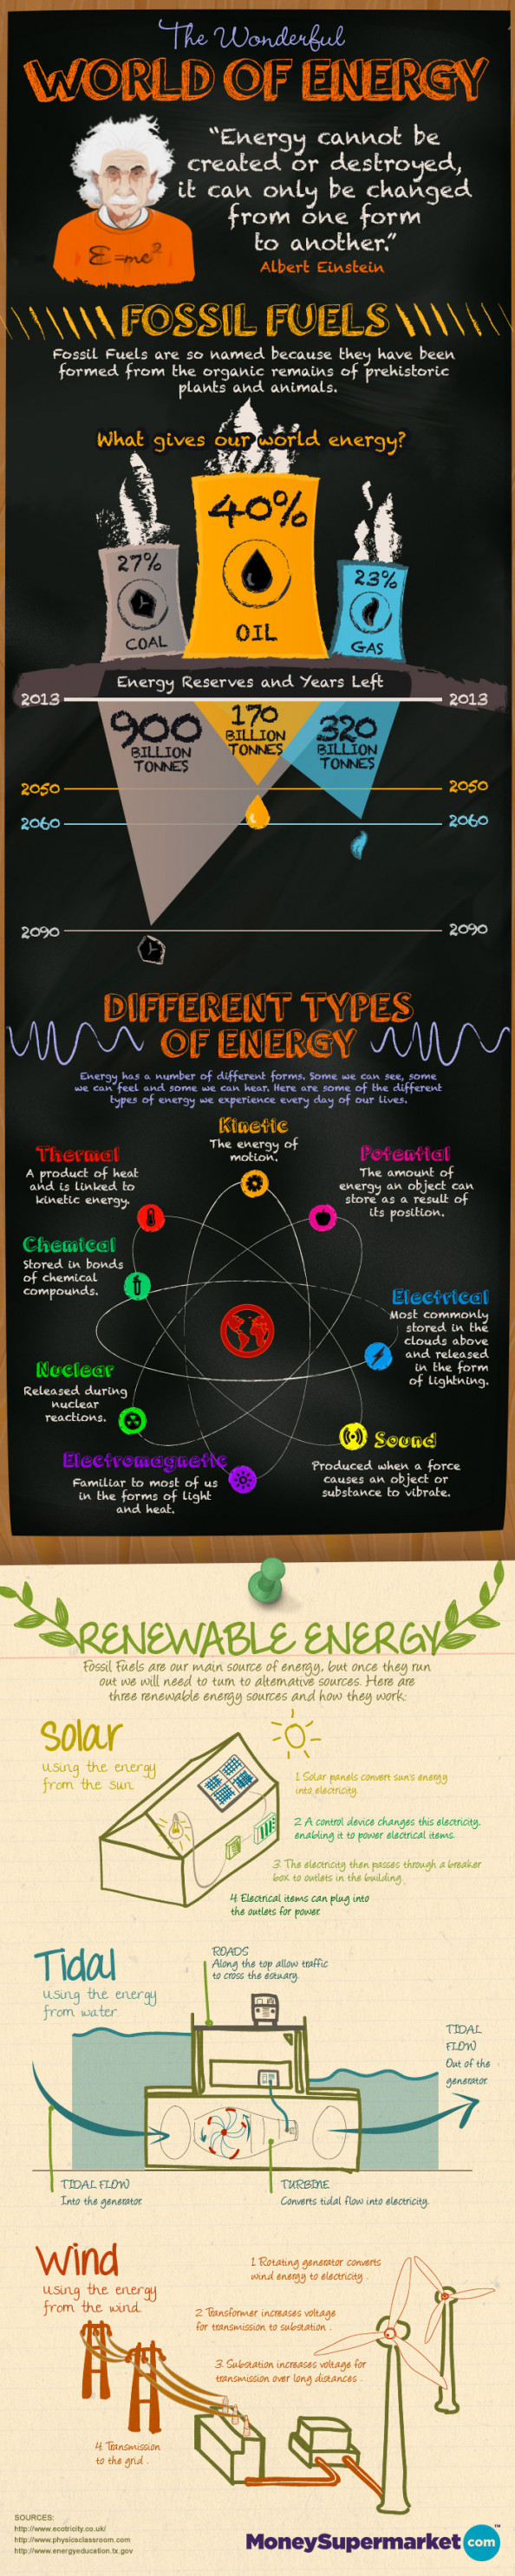 The Wonderful World of Energy Infographic